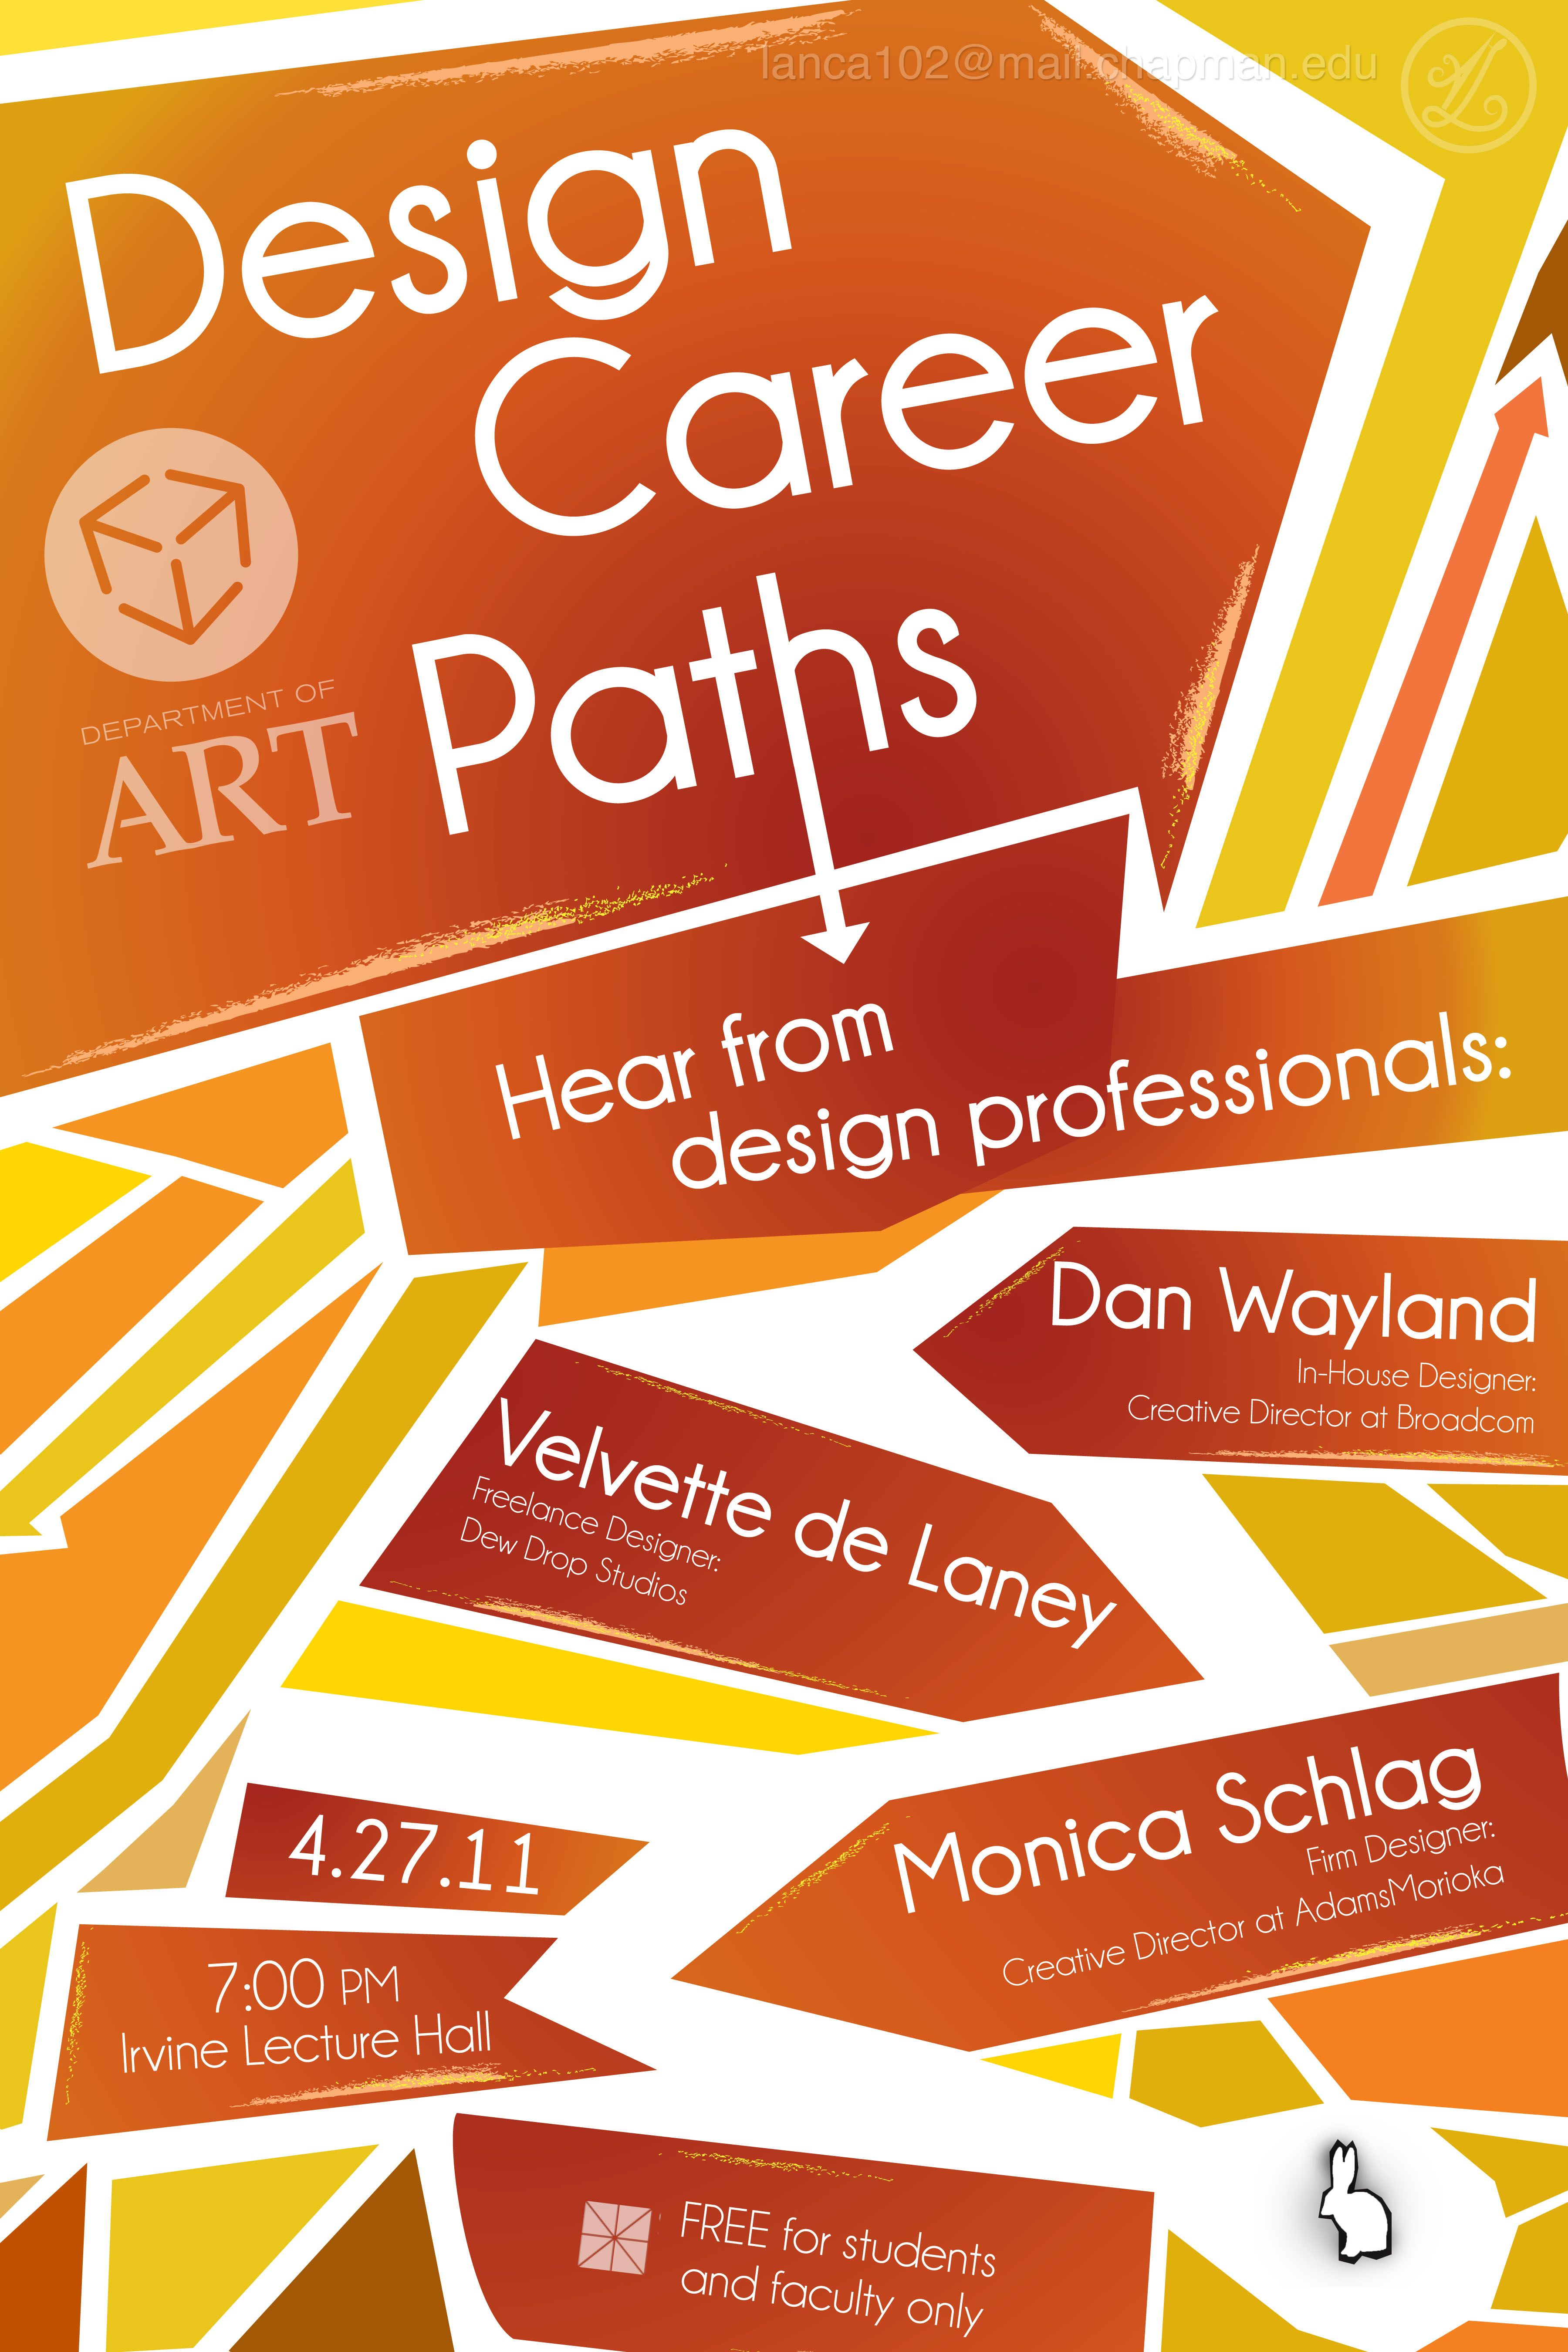 Poster design for technical events - A Poster Design Advertising A Graphic Design Lecture Event At Chapman University That Pulls From The Title Of The Event To Create A Figurative Design Theme